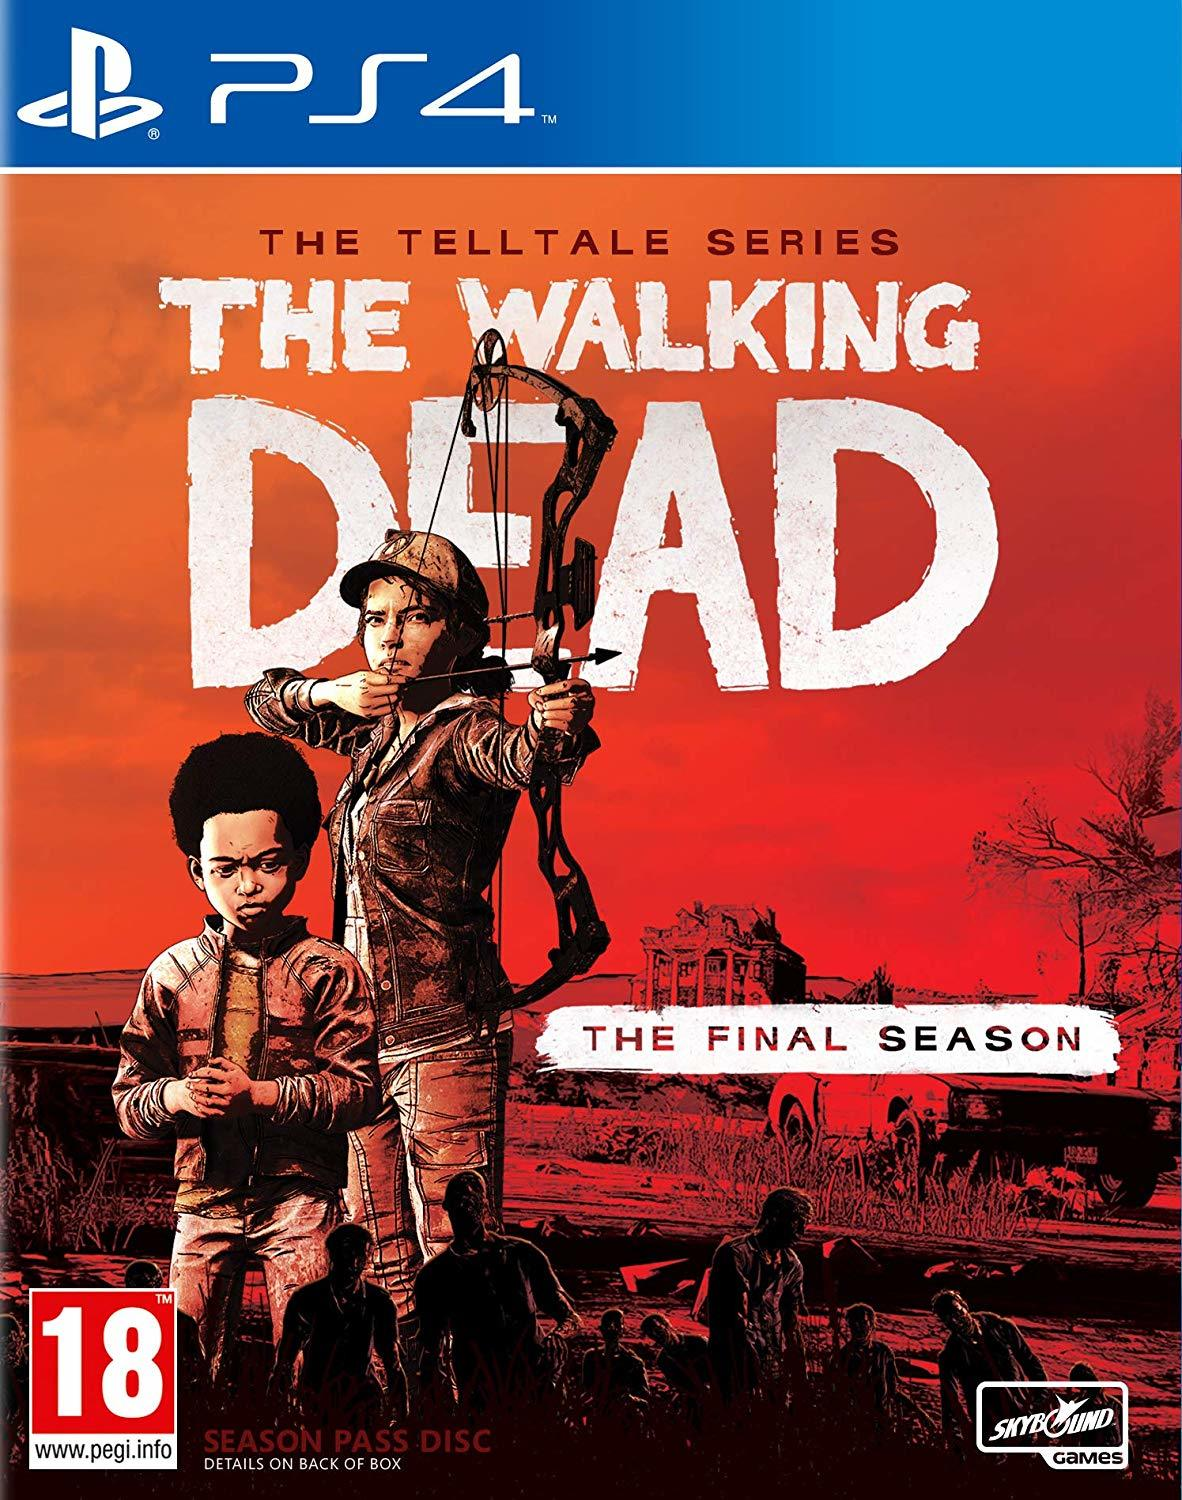 The Walking Dead - The Final Season for PS4 image